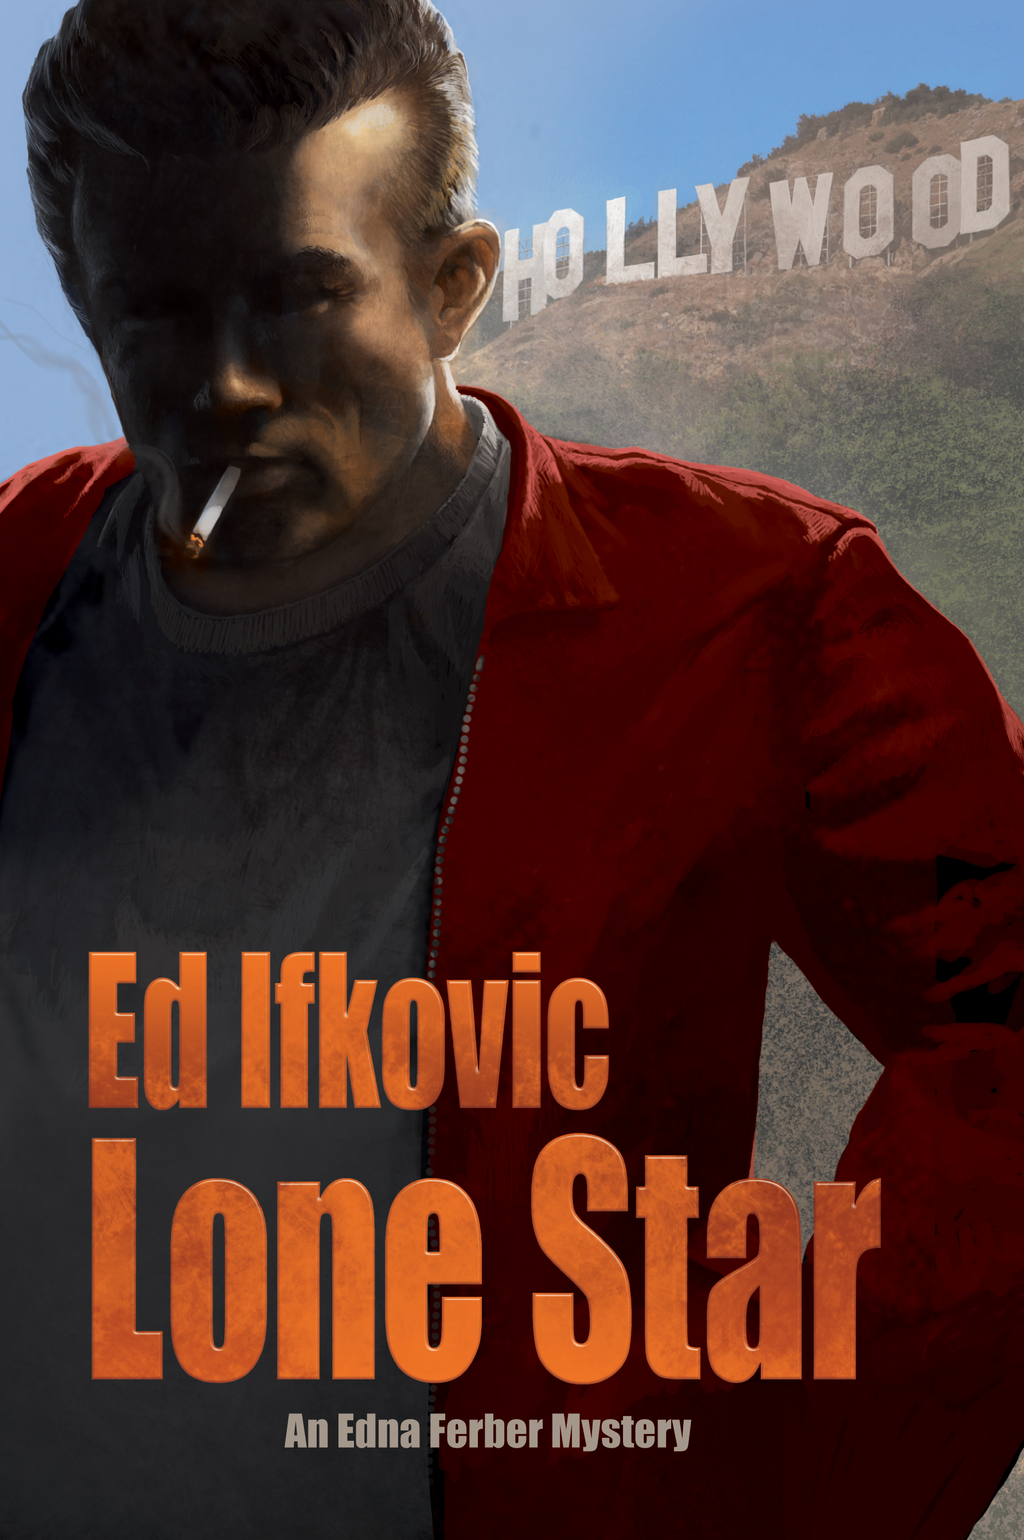 Lone Star By: Ed Ifkovic